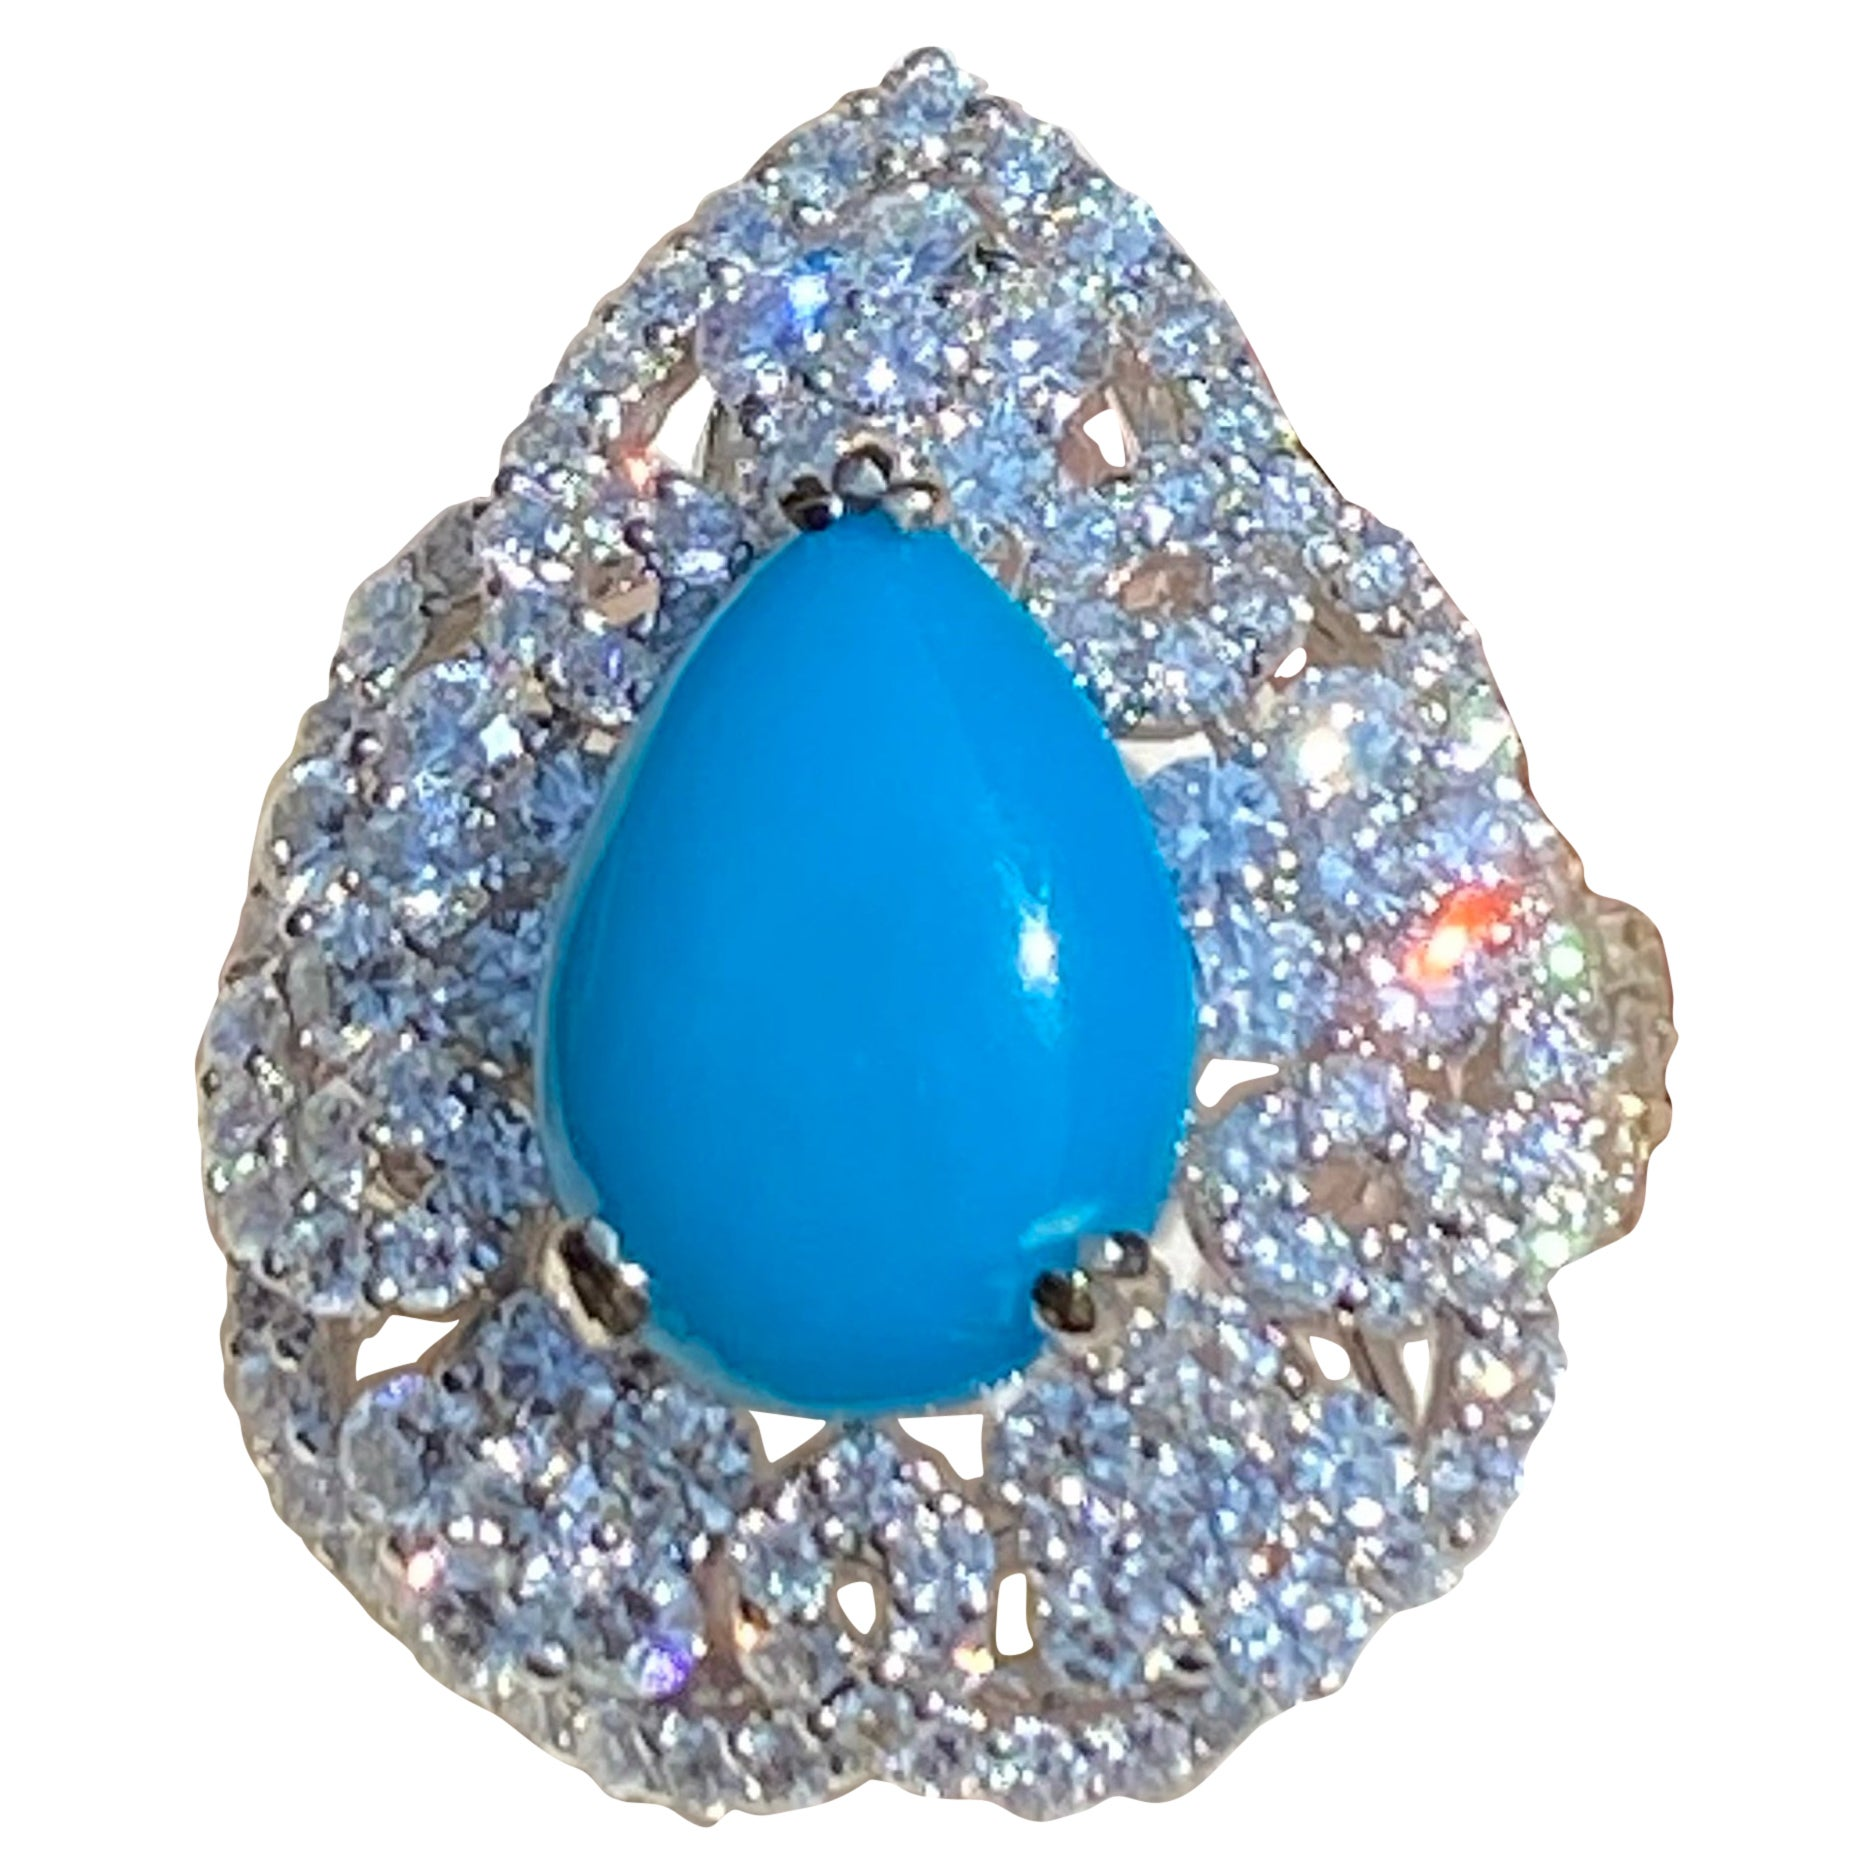 Large Pear Shaped Natural Persian Turquoise and Diamond 18 Karat Cocktail Ring